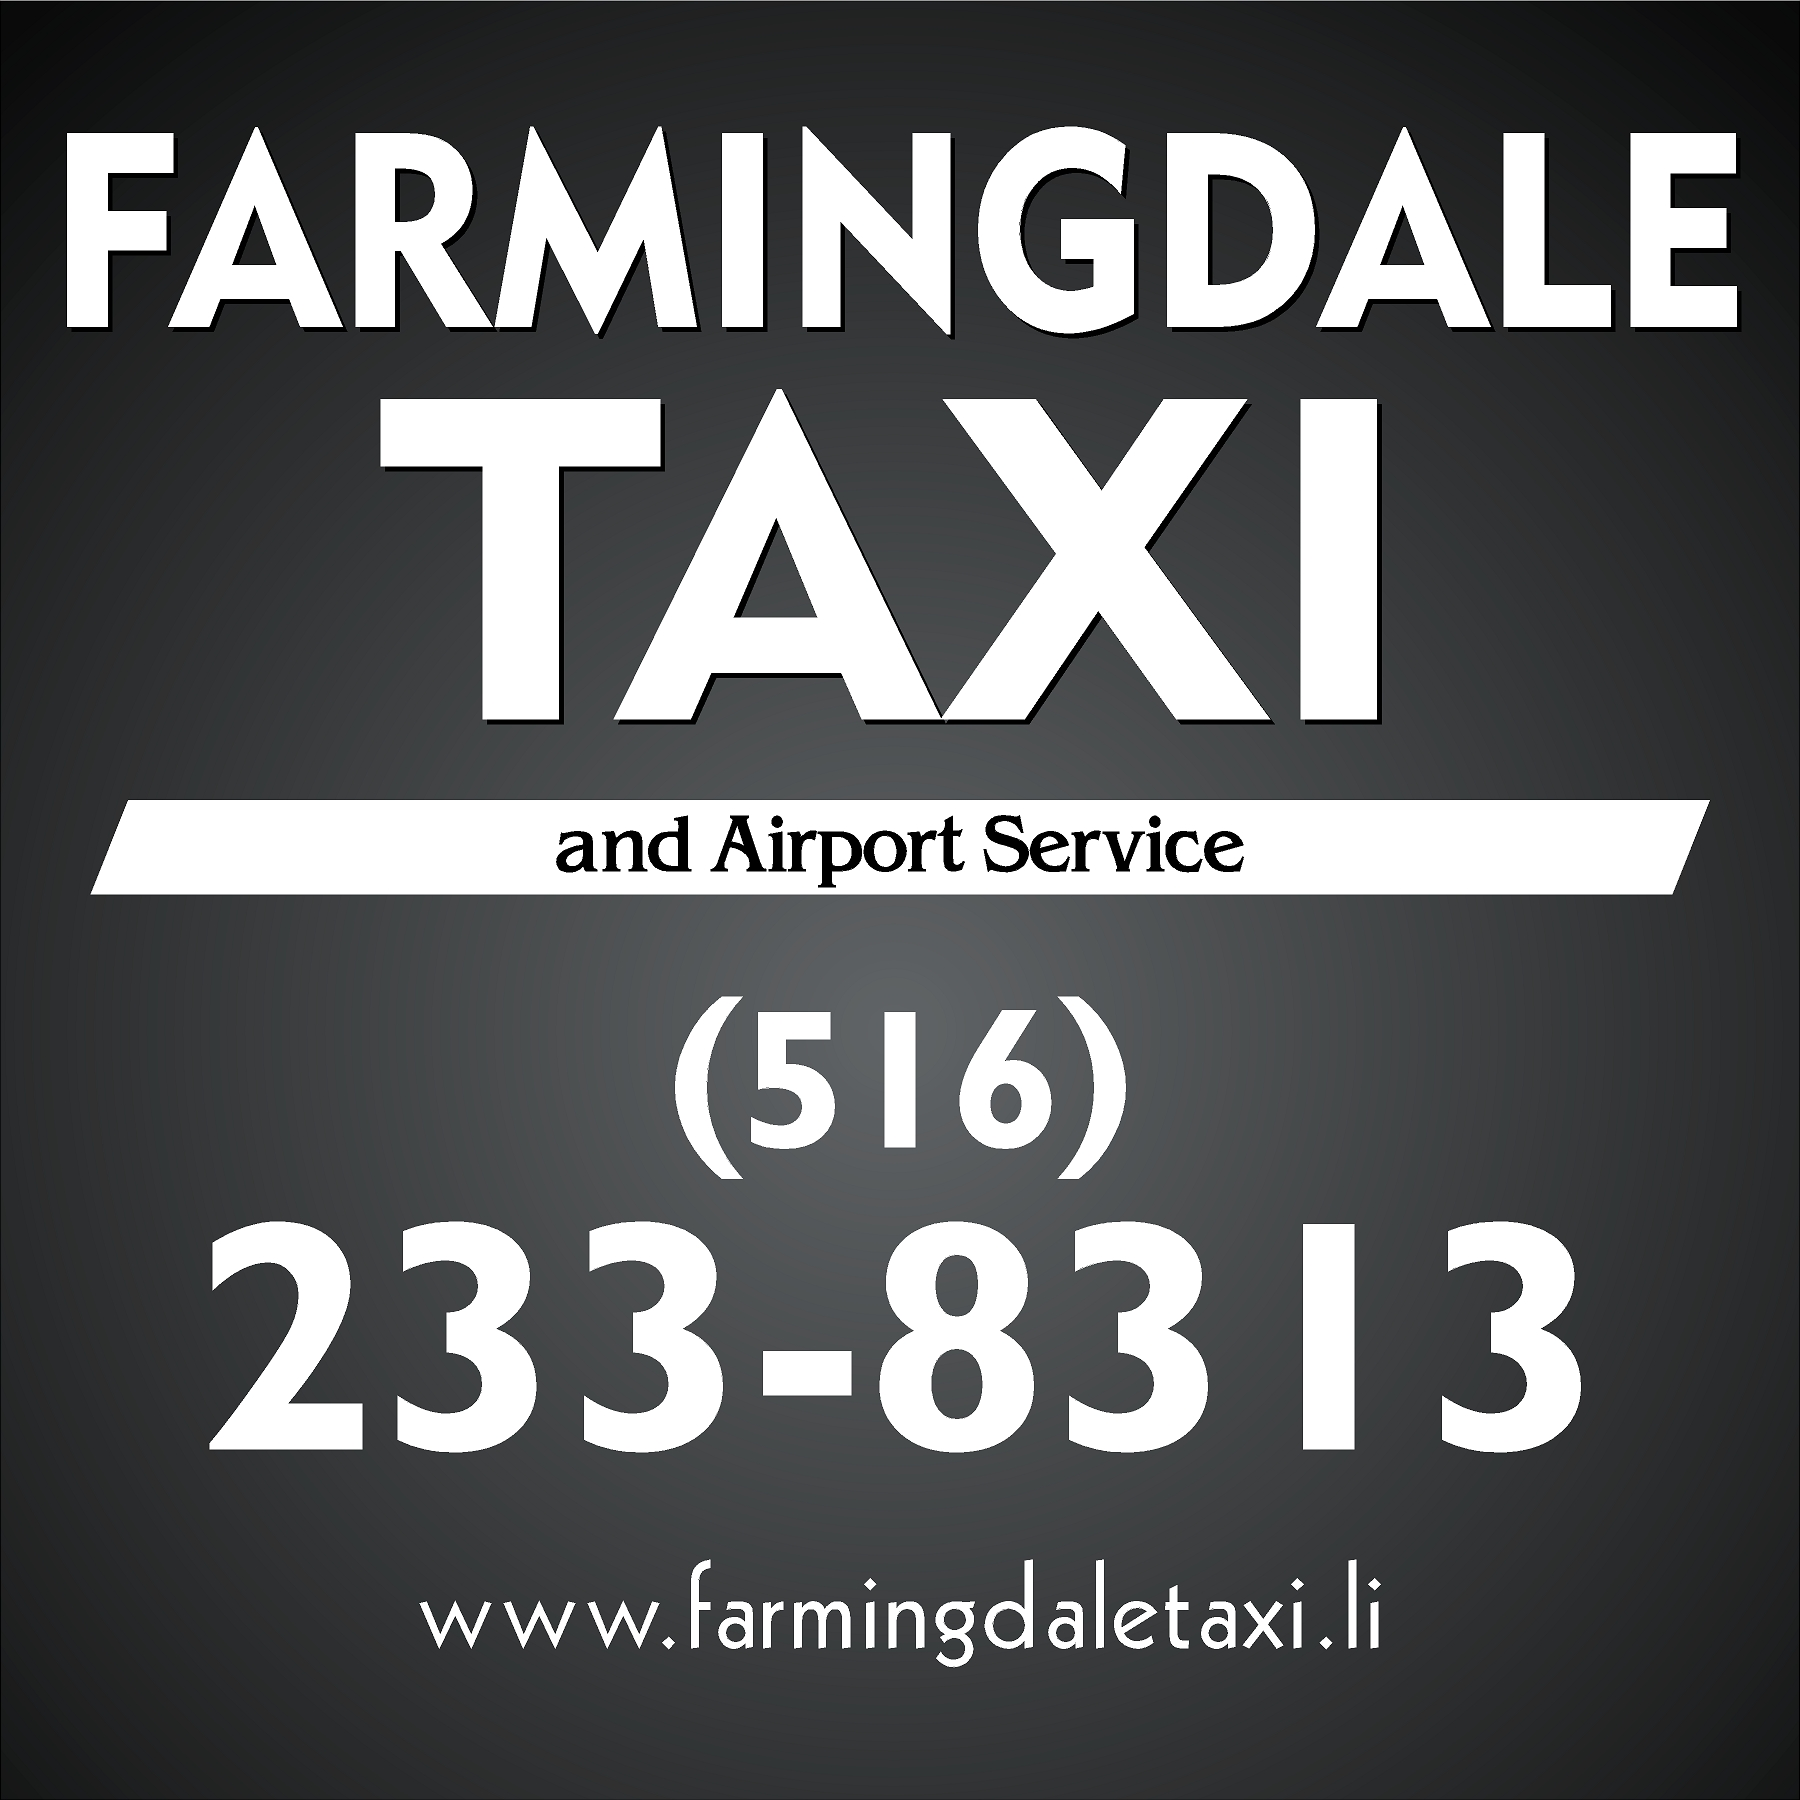 Farmingdale Taxi and Airport Service - Farmingdale, NY - Taxi Cabs & Limo Rental